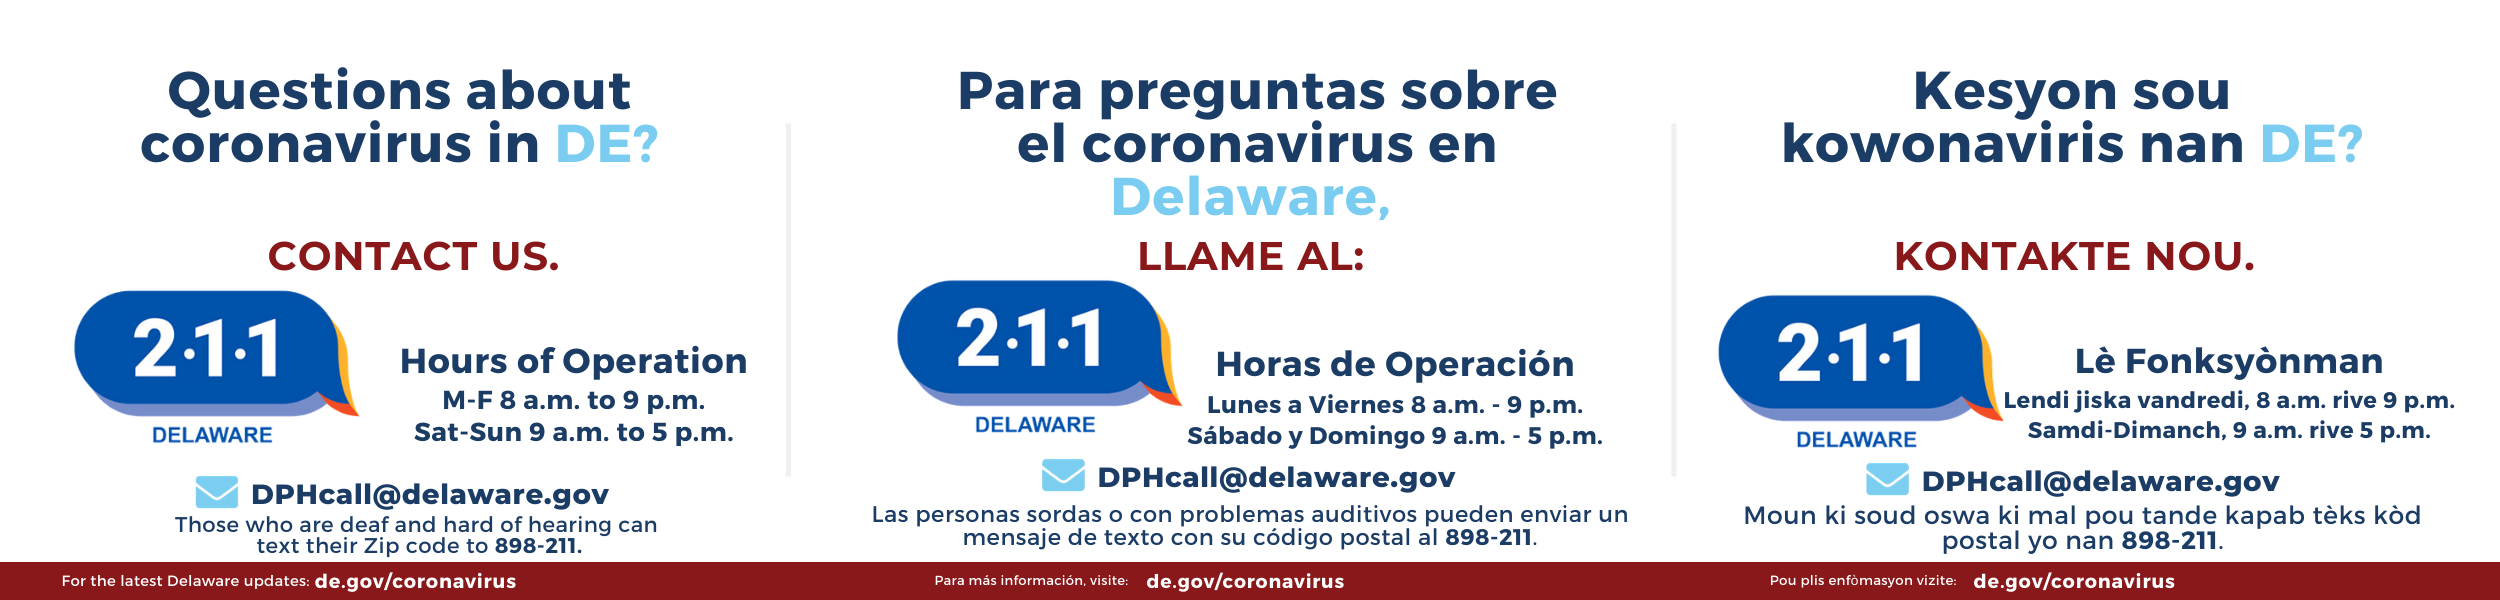 Dial 2-1-1 for questions about coronavirus